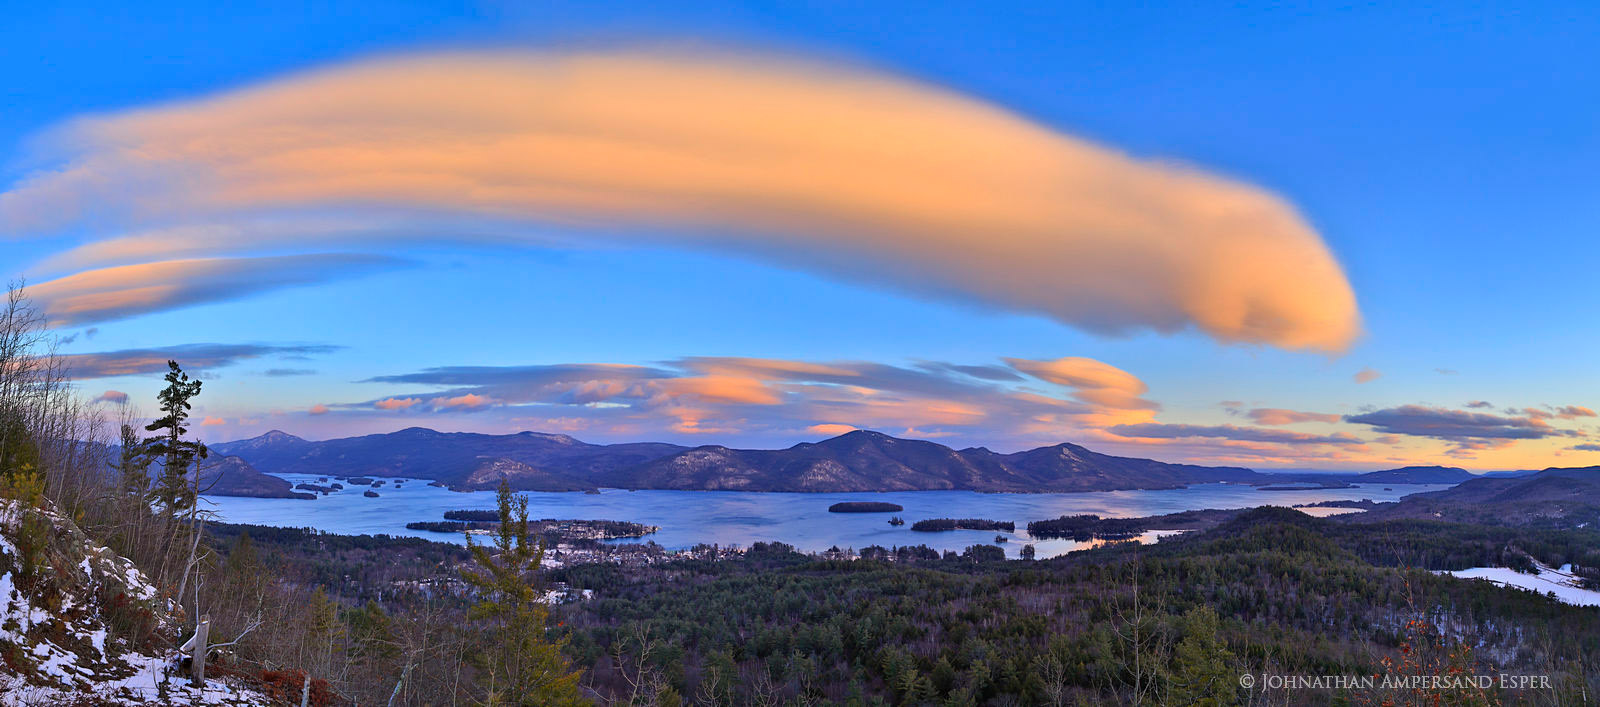 lenticular clouds,clouds,dramatic,Lake George,winter,2016,Adirondack Park,Adirondack,lake,Lake George lenticular clouds,The Pinnacle,Pinnacle,Pinnacle Lake George,sunset,, photo